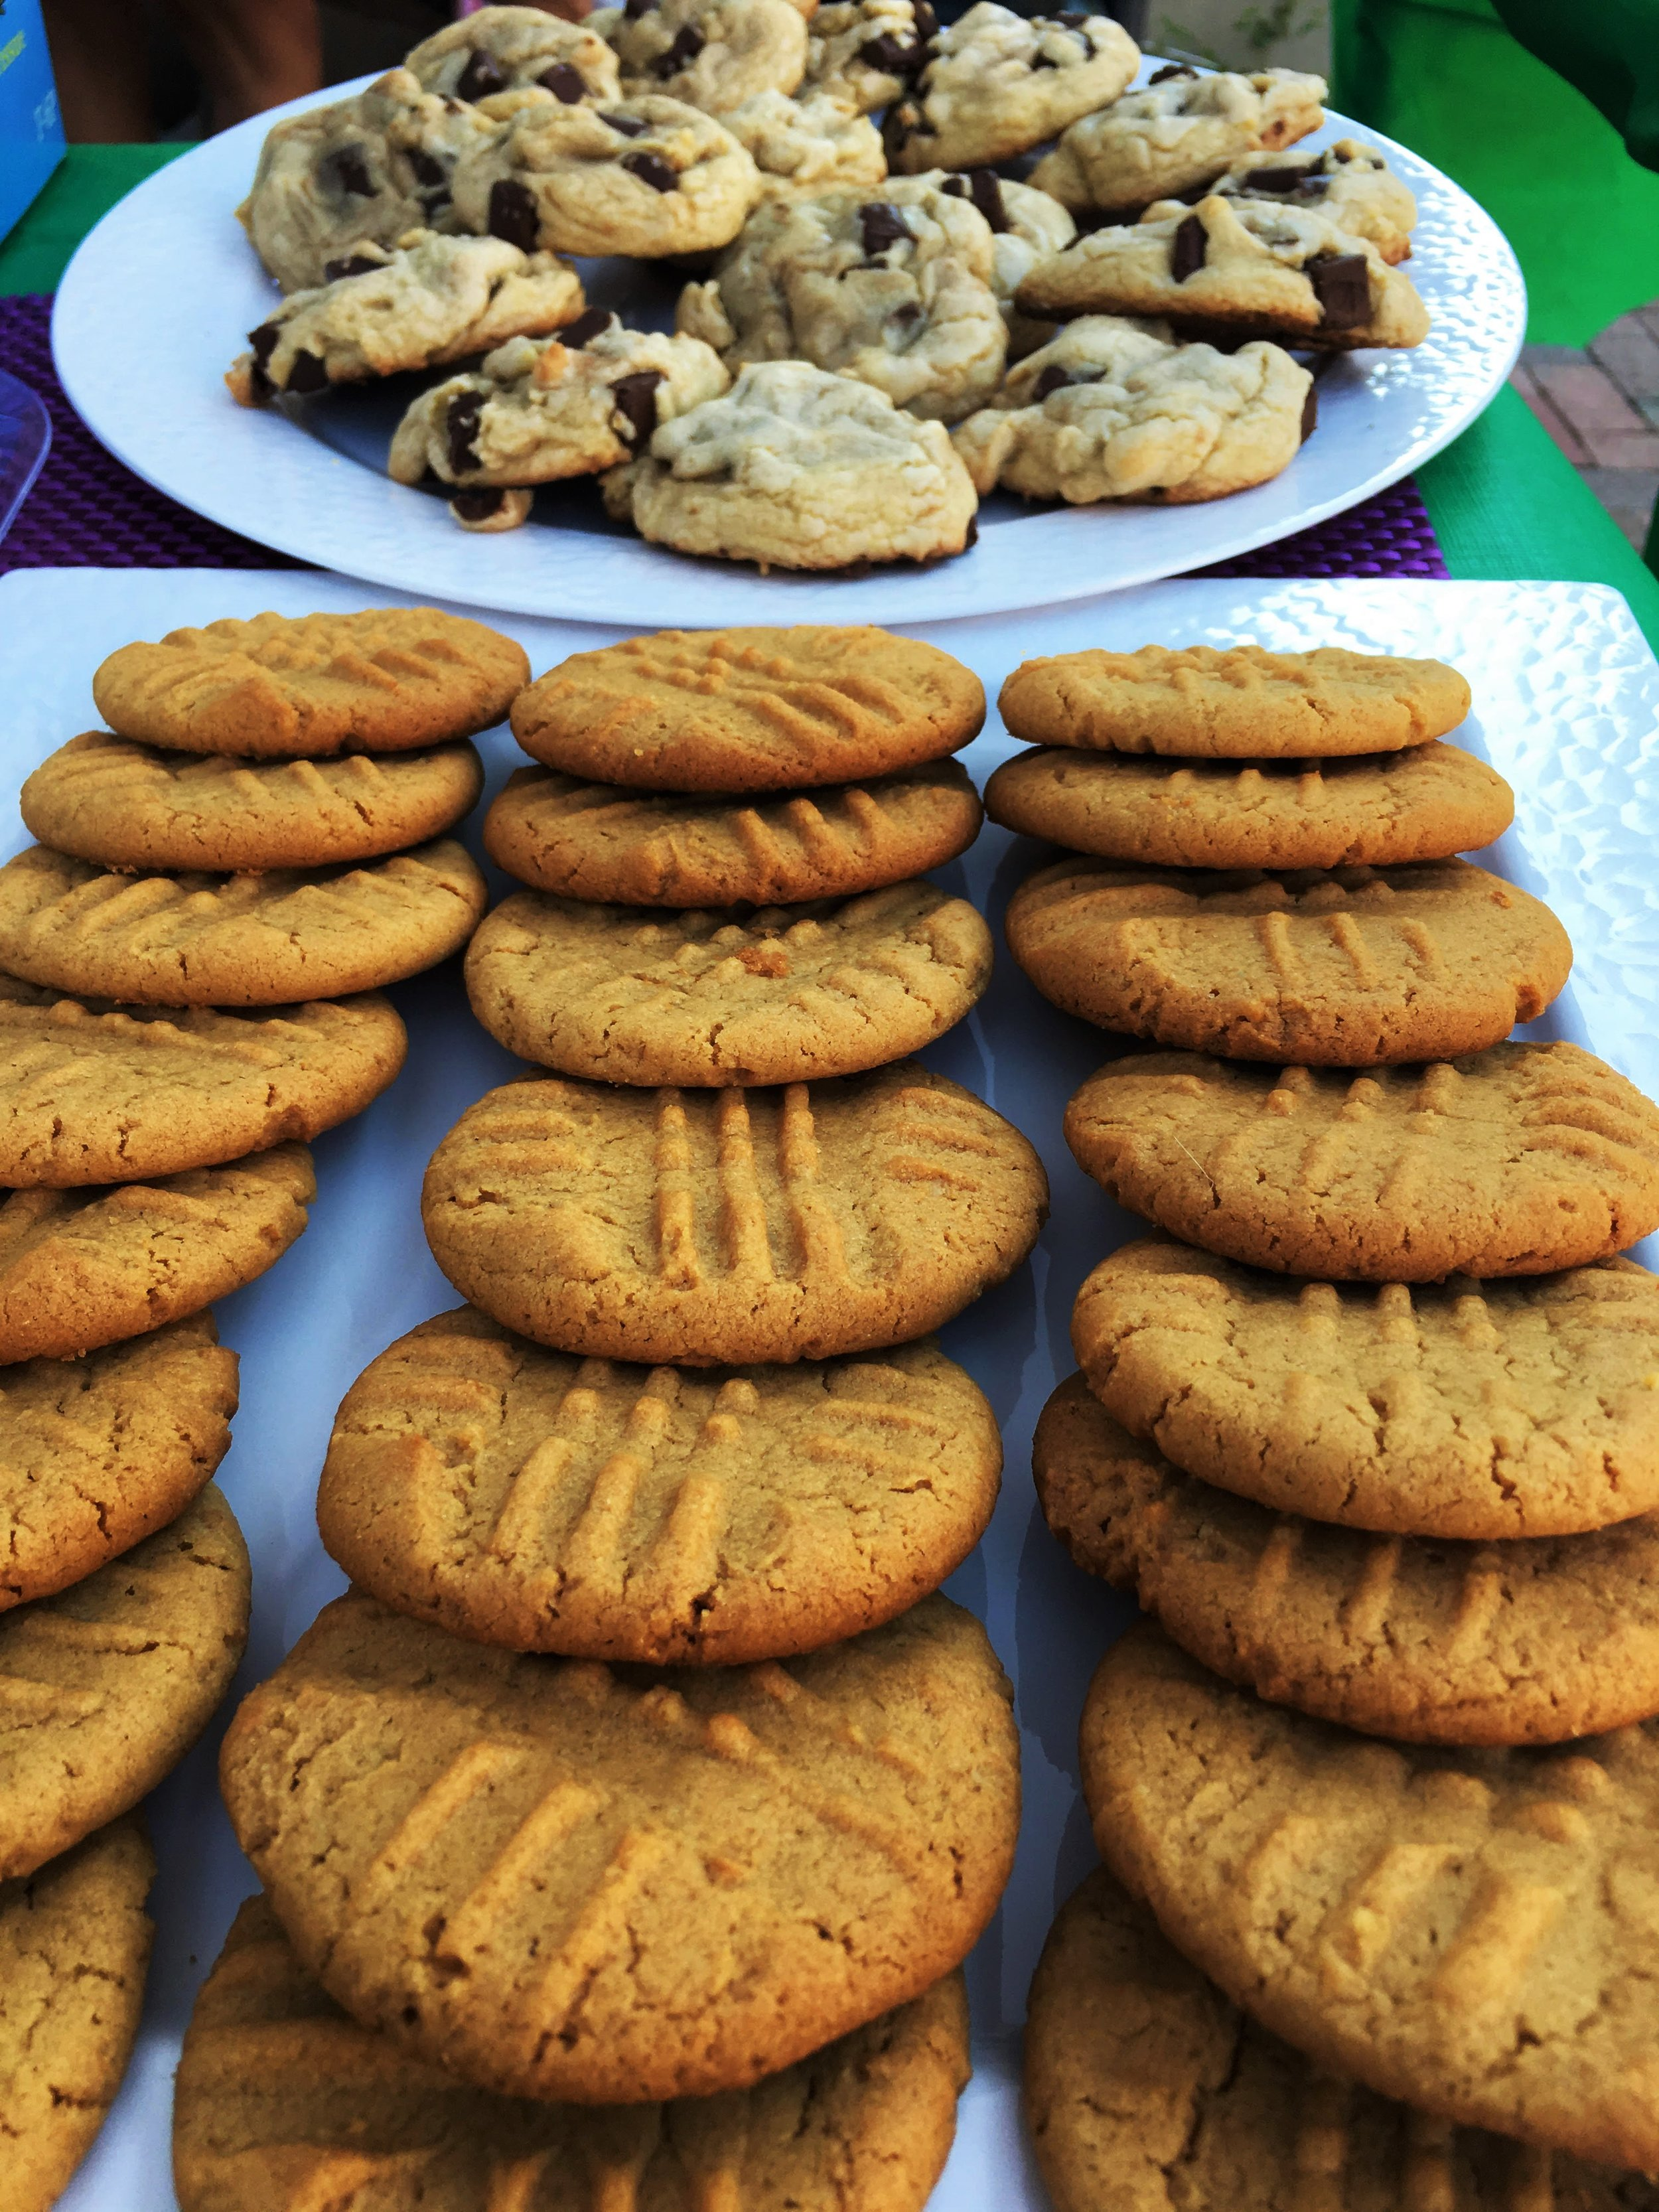 Peanut Butter Cookies and Chocolate Chip Cookies